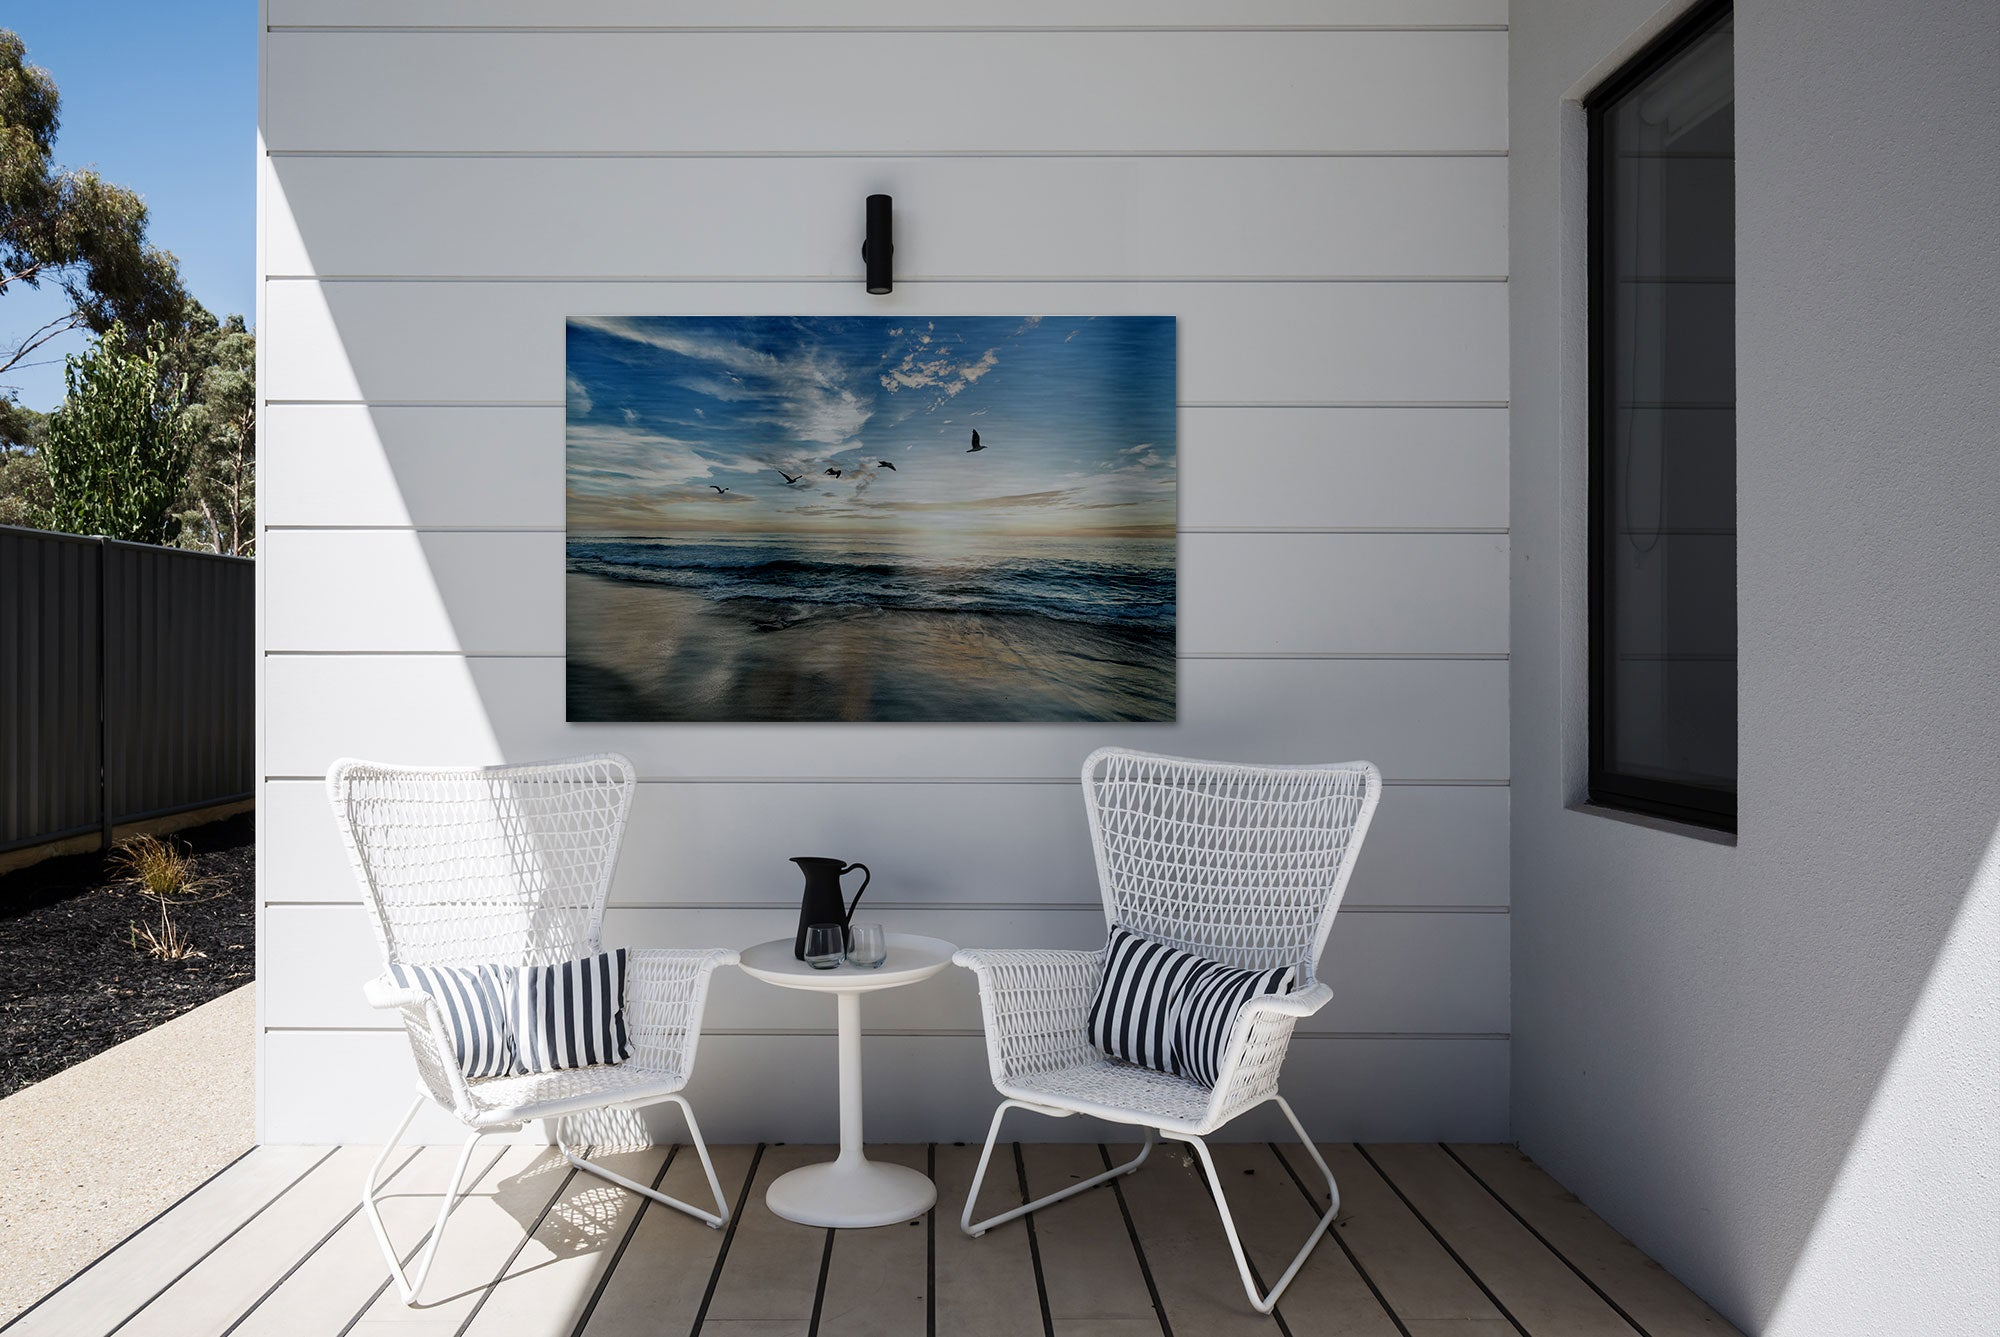 Outdoor Metal Wall Decor - Photo Printed on Brushed Aluminum